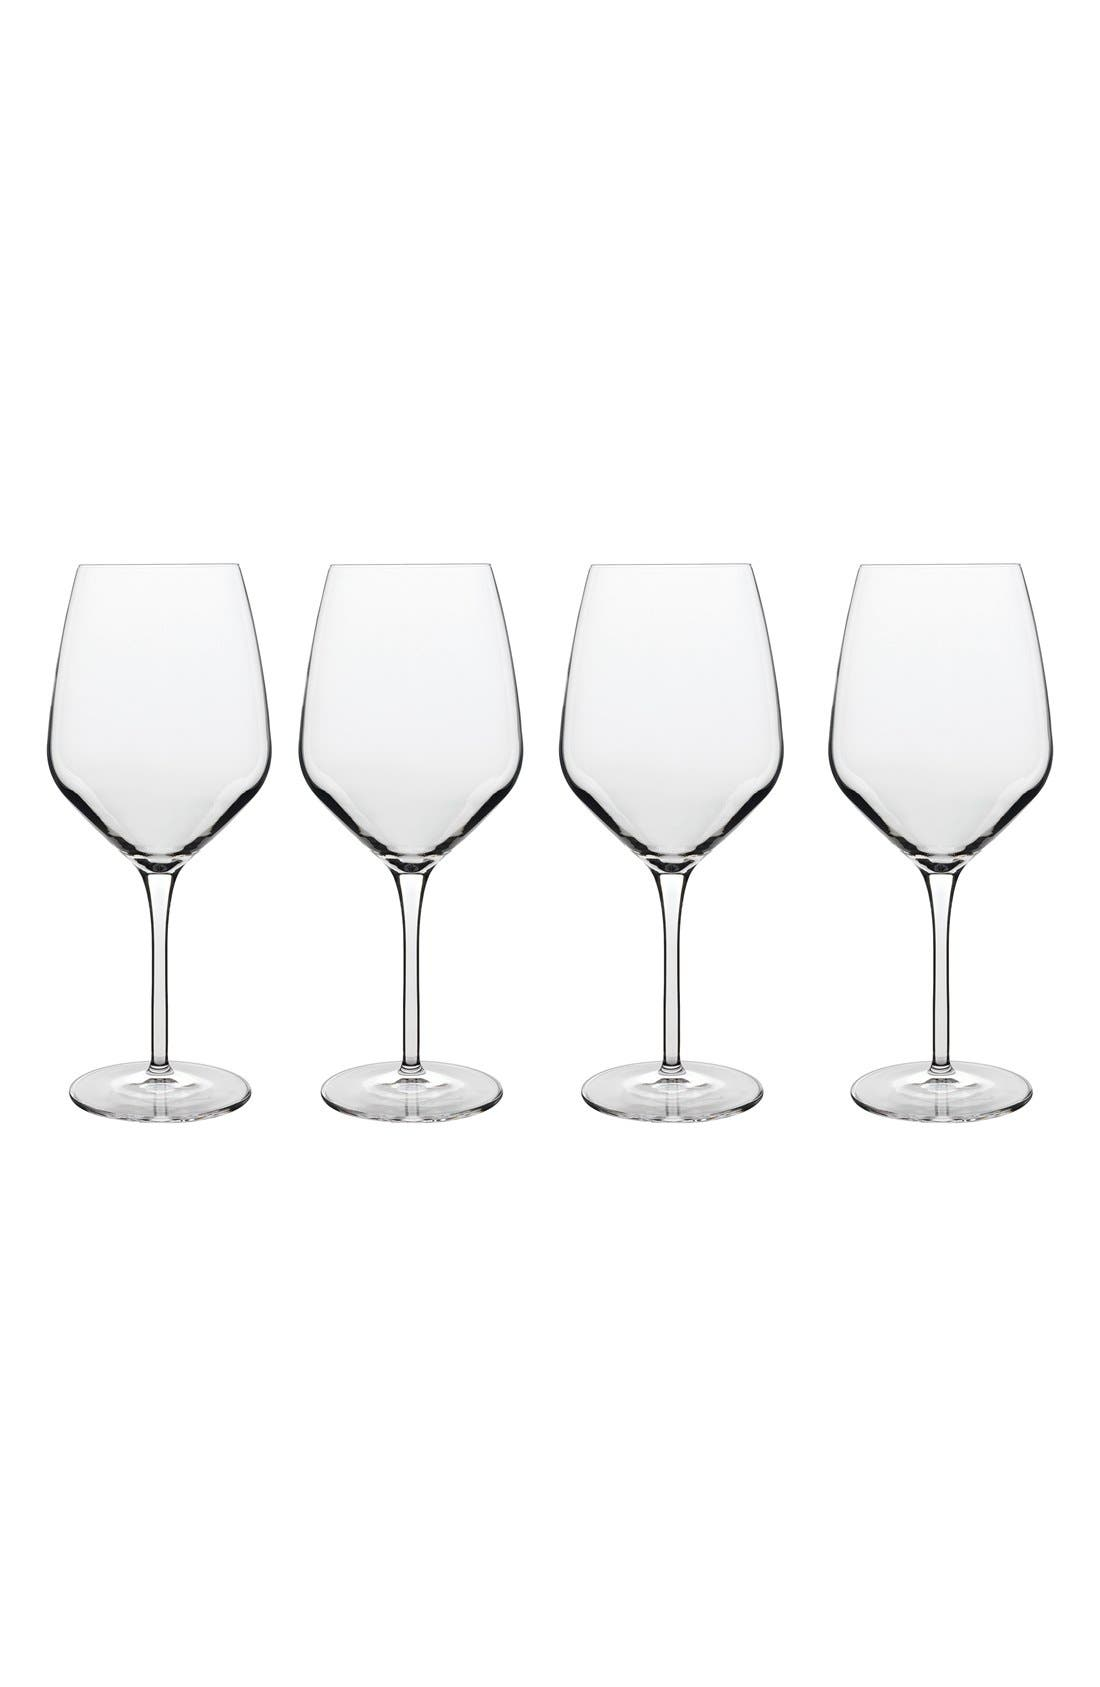 Prestige Set of 4 Wine Glasses,                             Main thumbnail 1, color,                             100